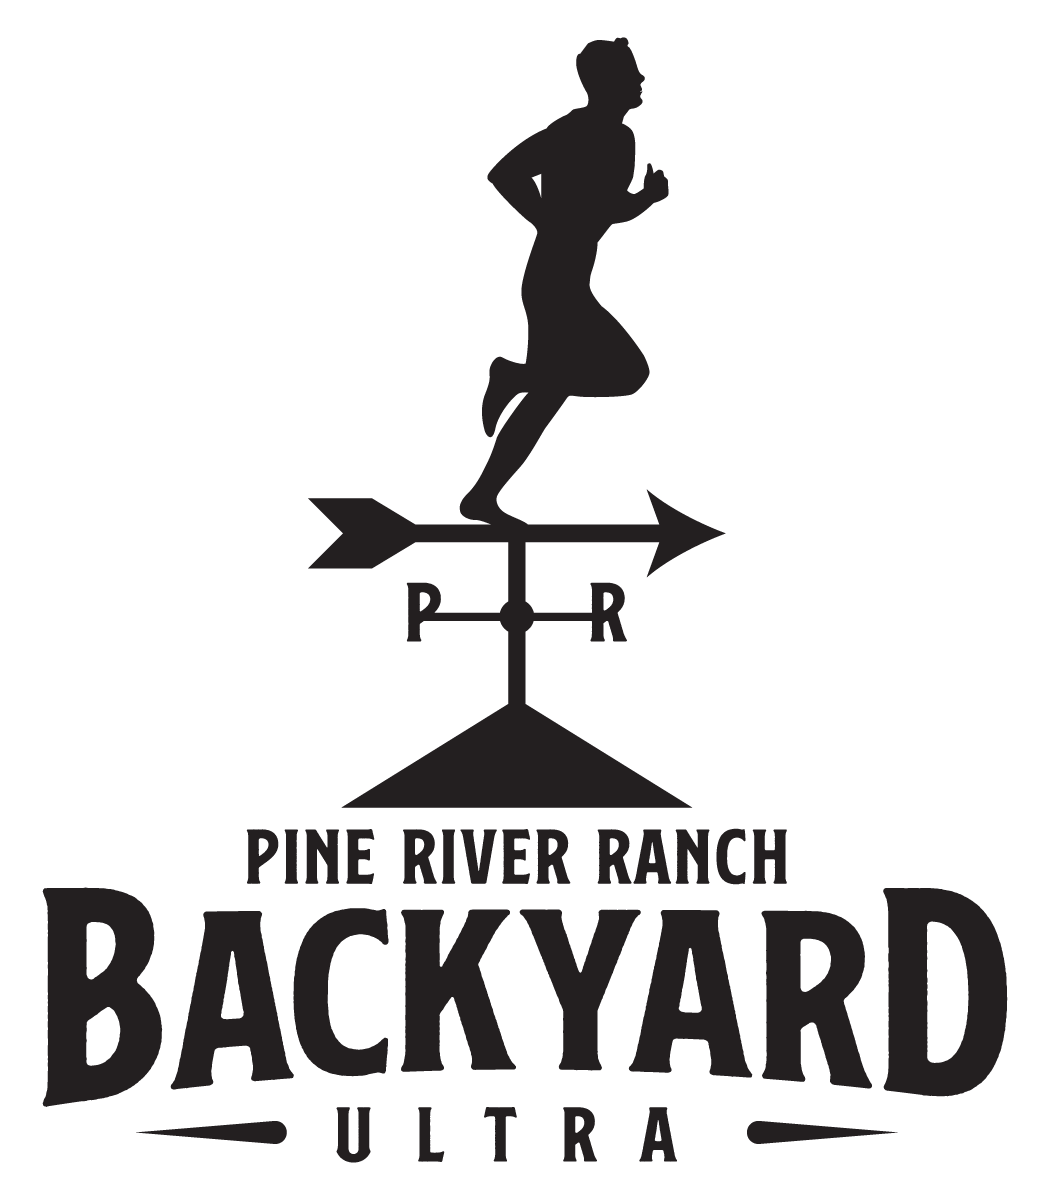 Pine River Ranch Backyard Ultra